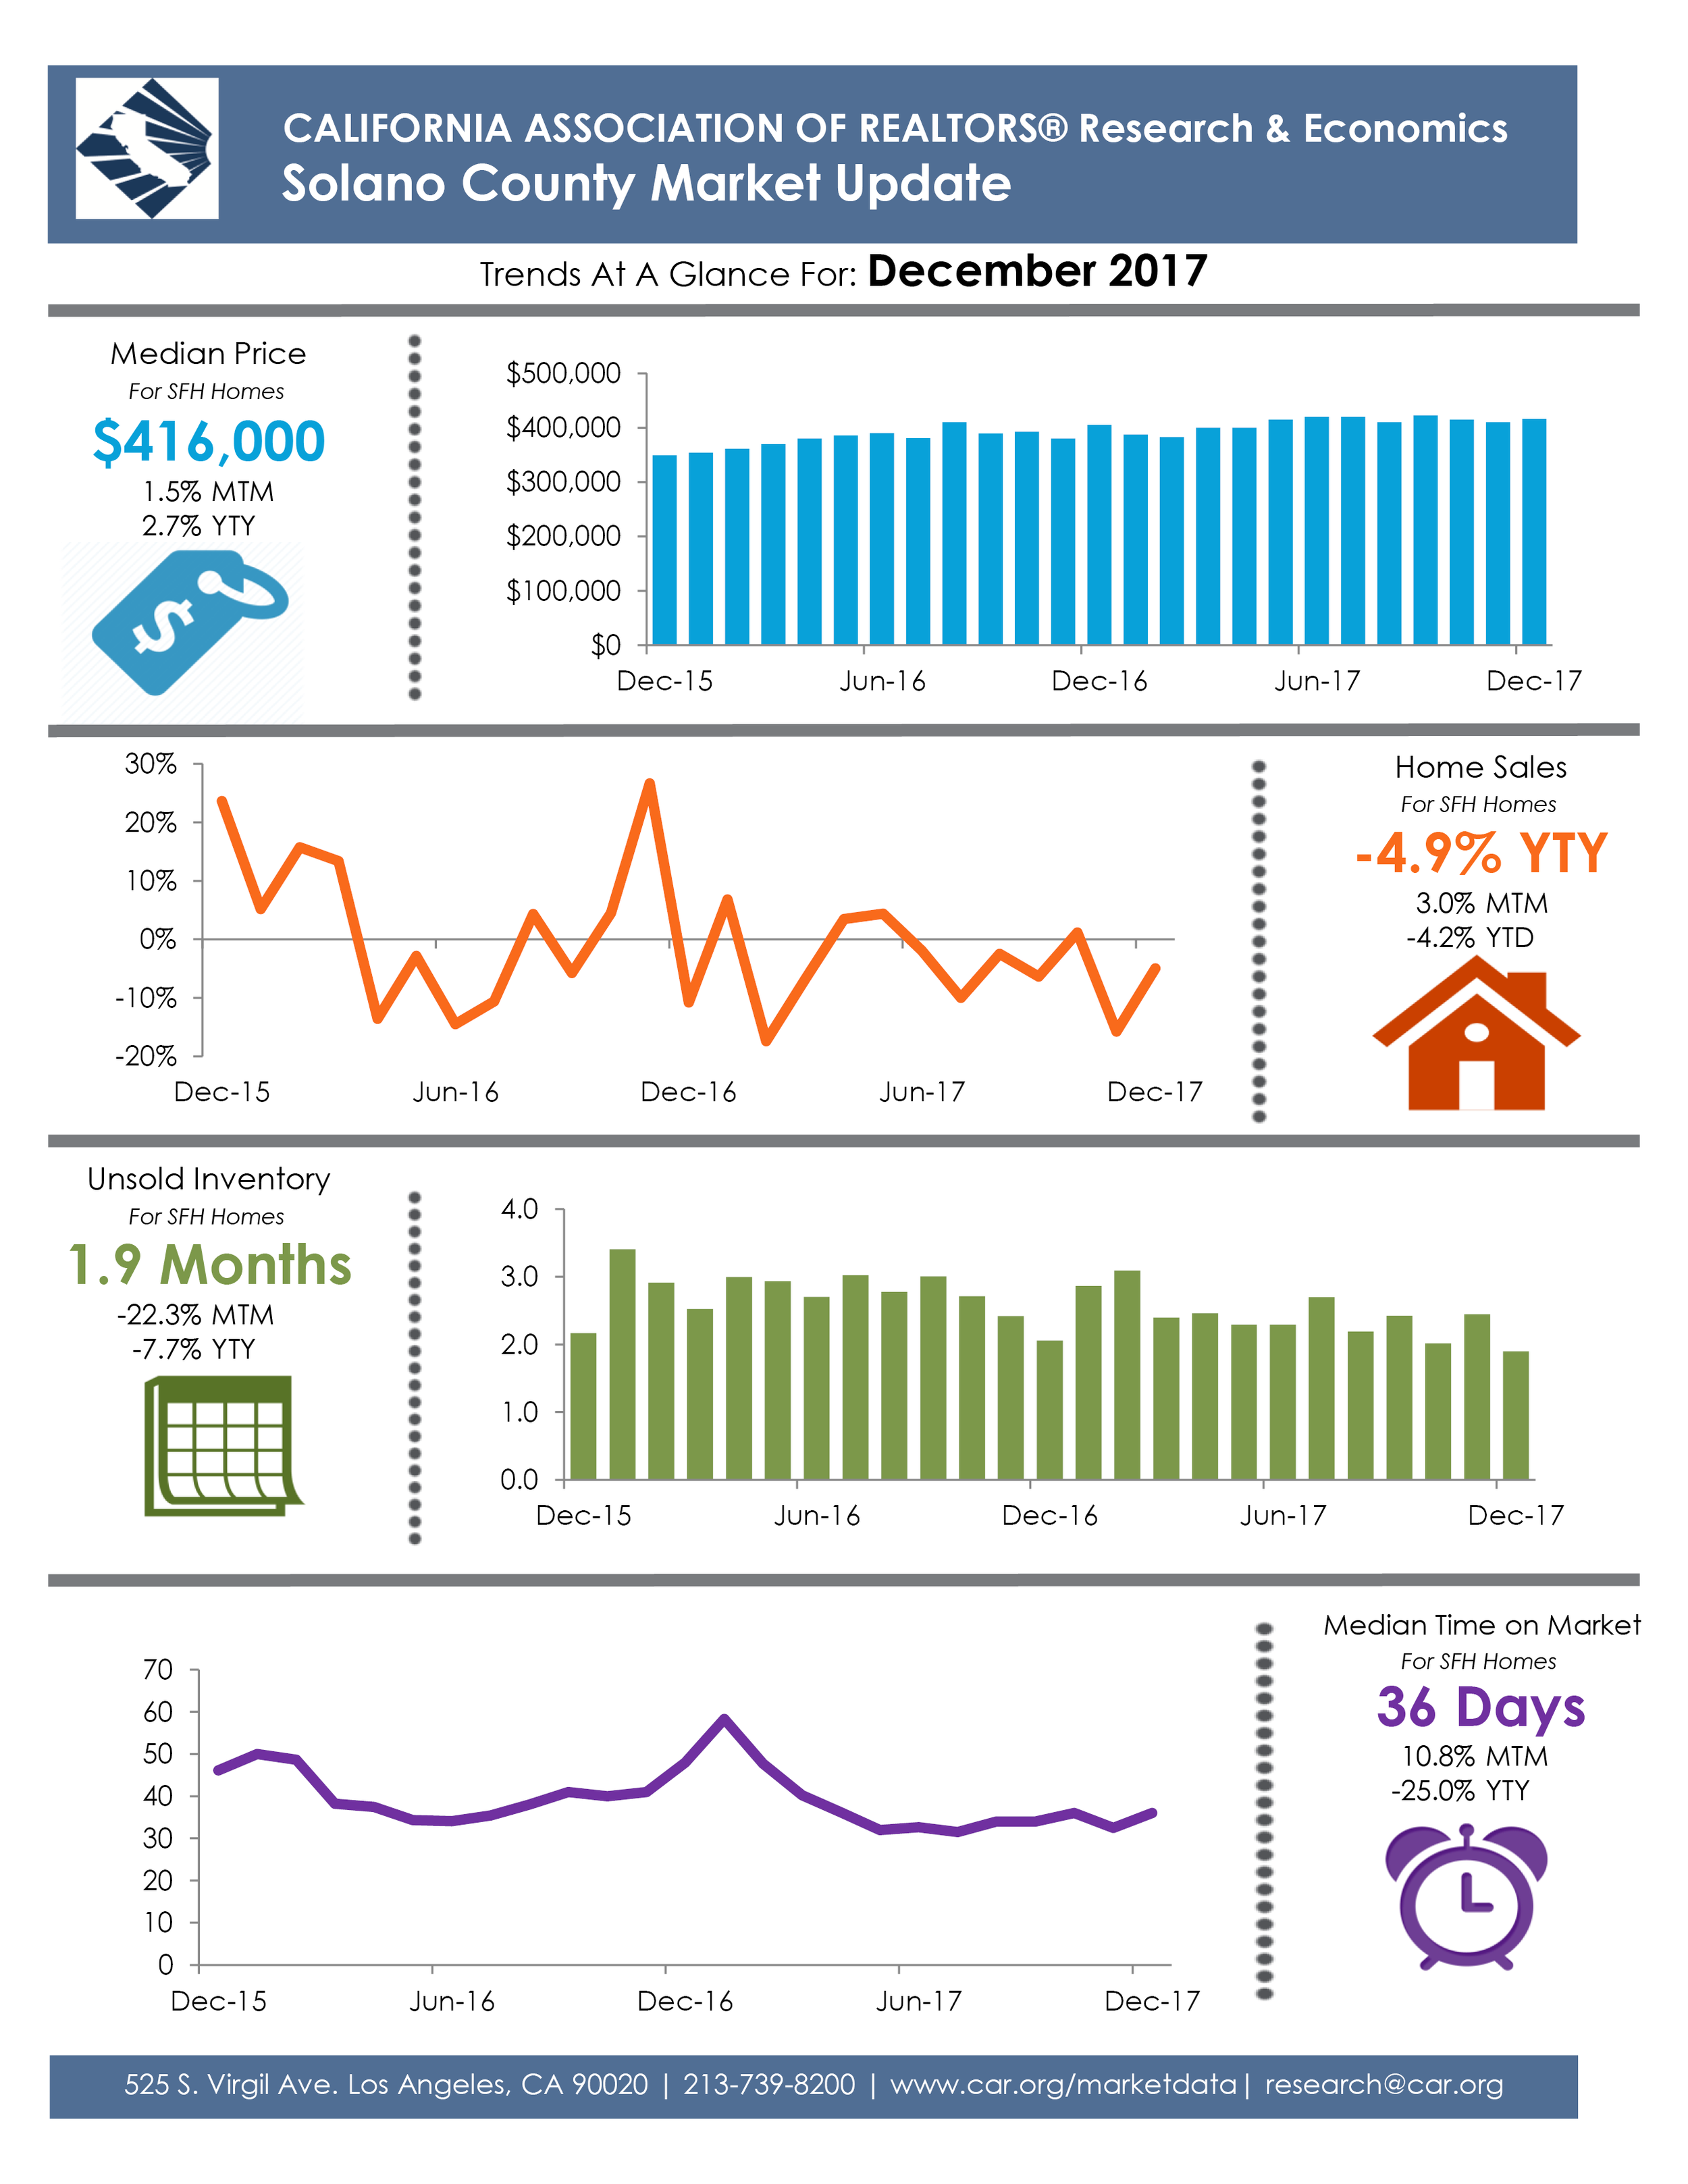 SolanoCountyTrends12-17.png